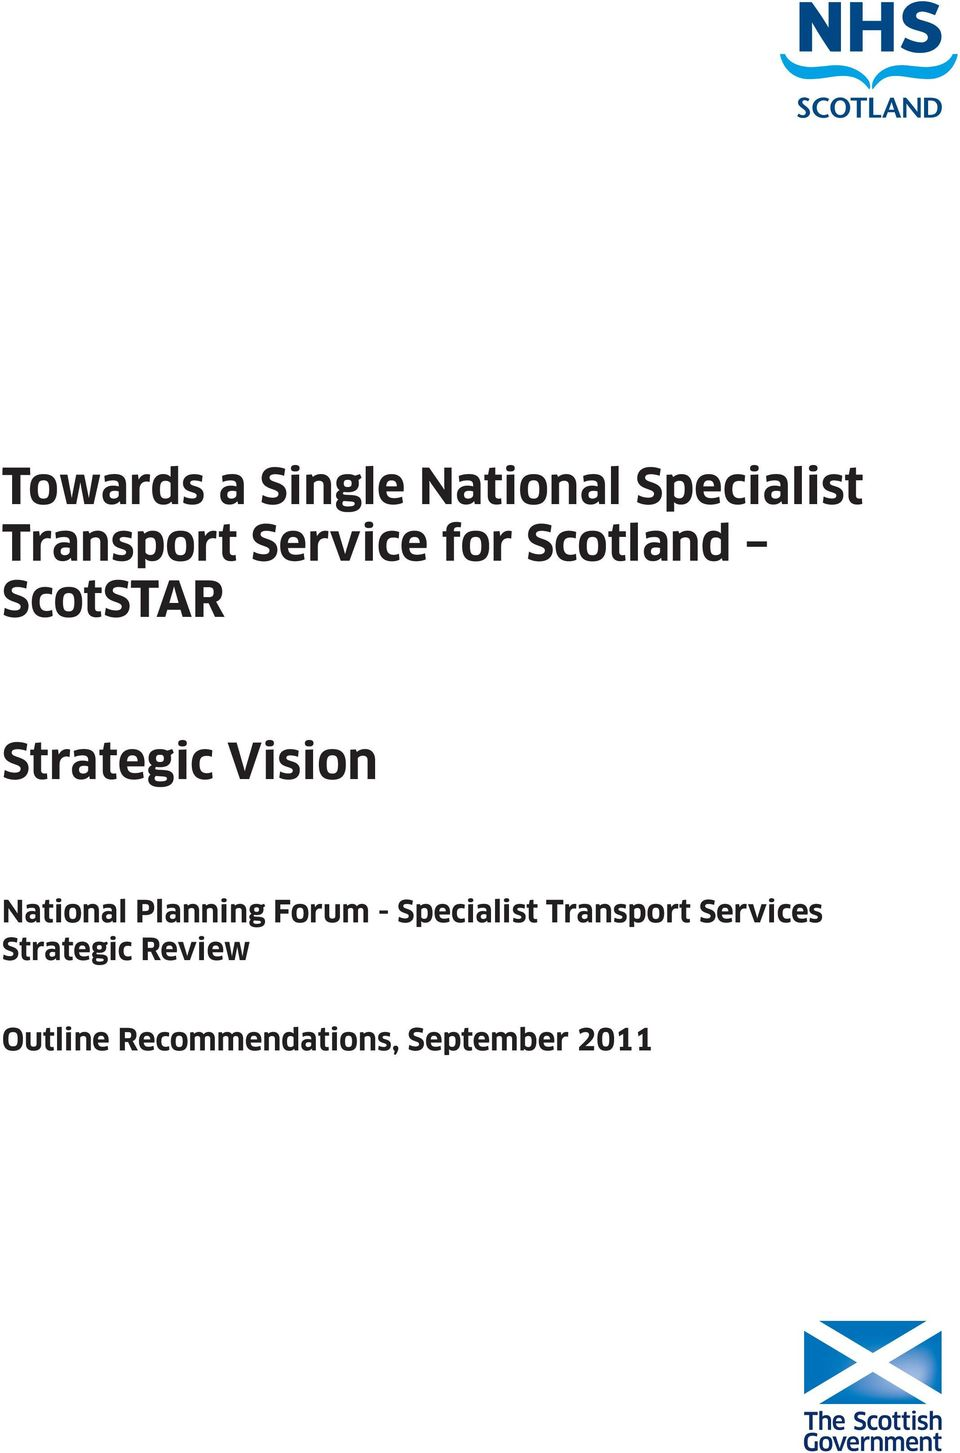 National Planning Forum - Specialist Transport